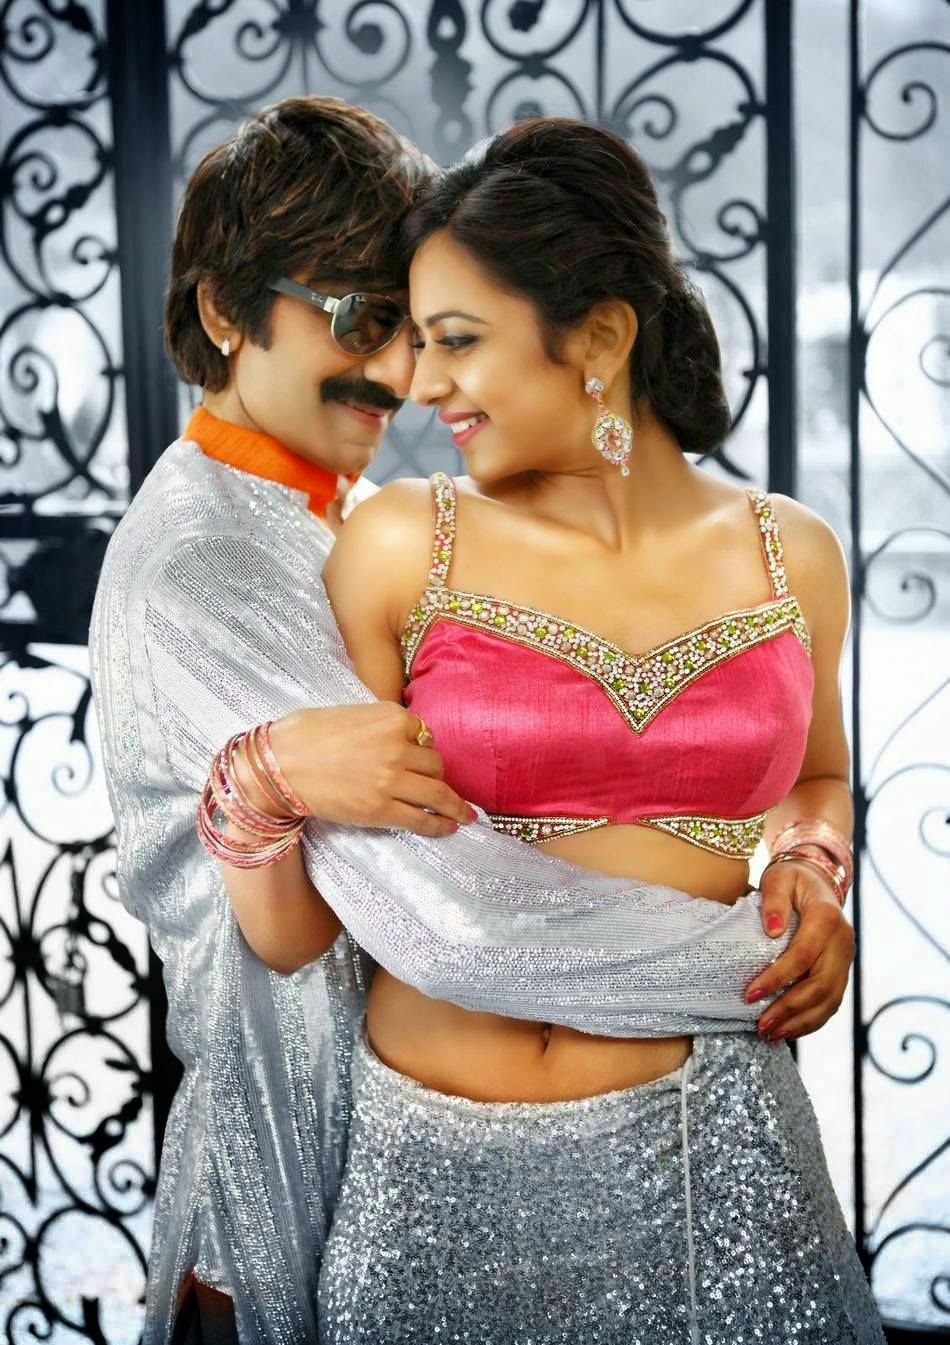 Kick 2 Latest Movie Photos, Tollywood Actor, Tollywood Actress,